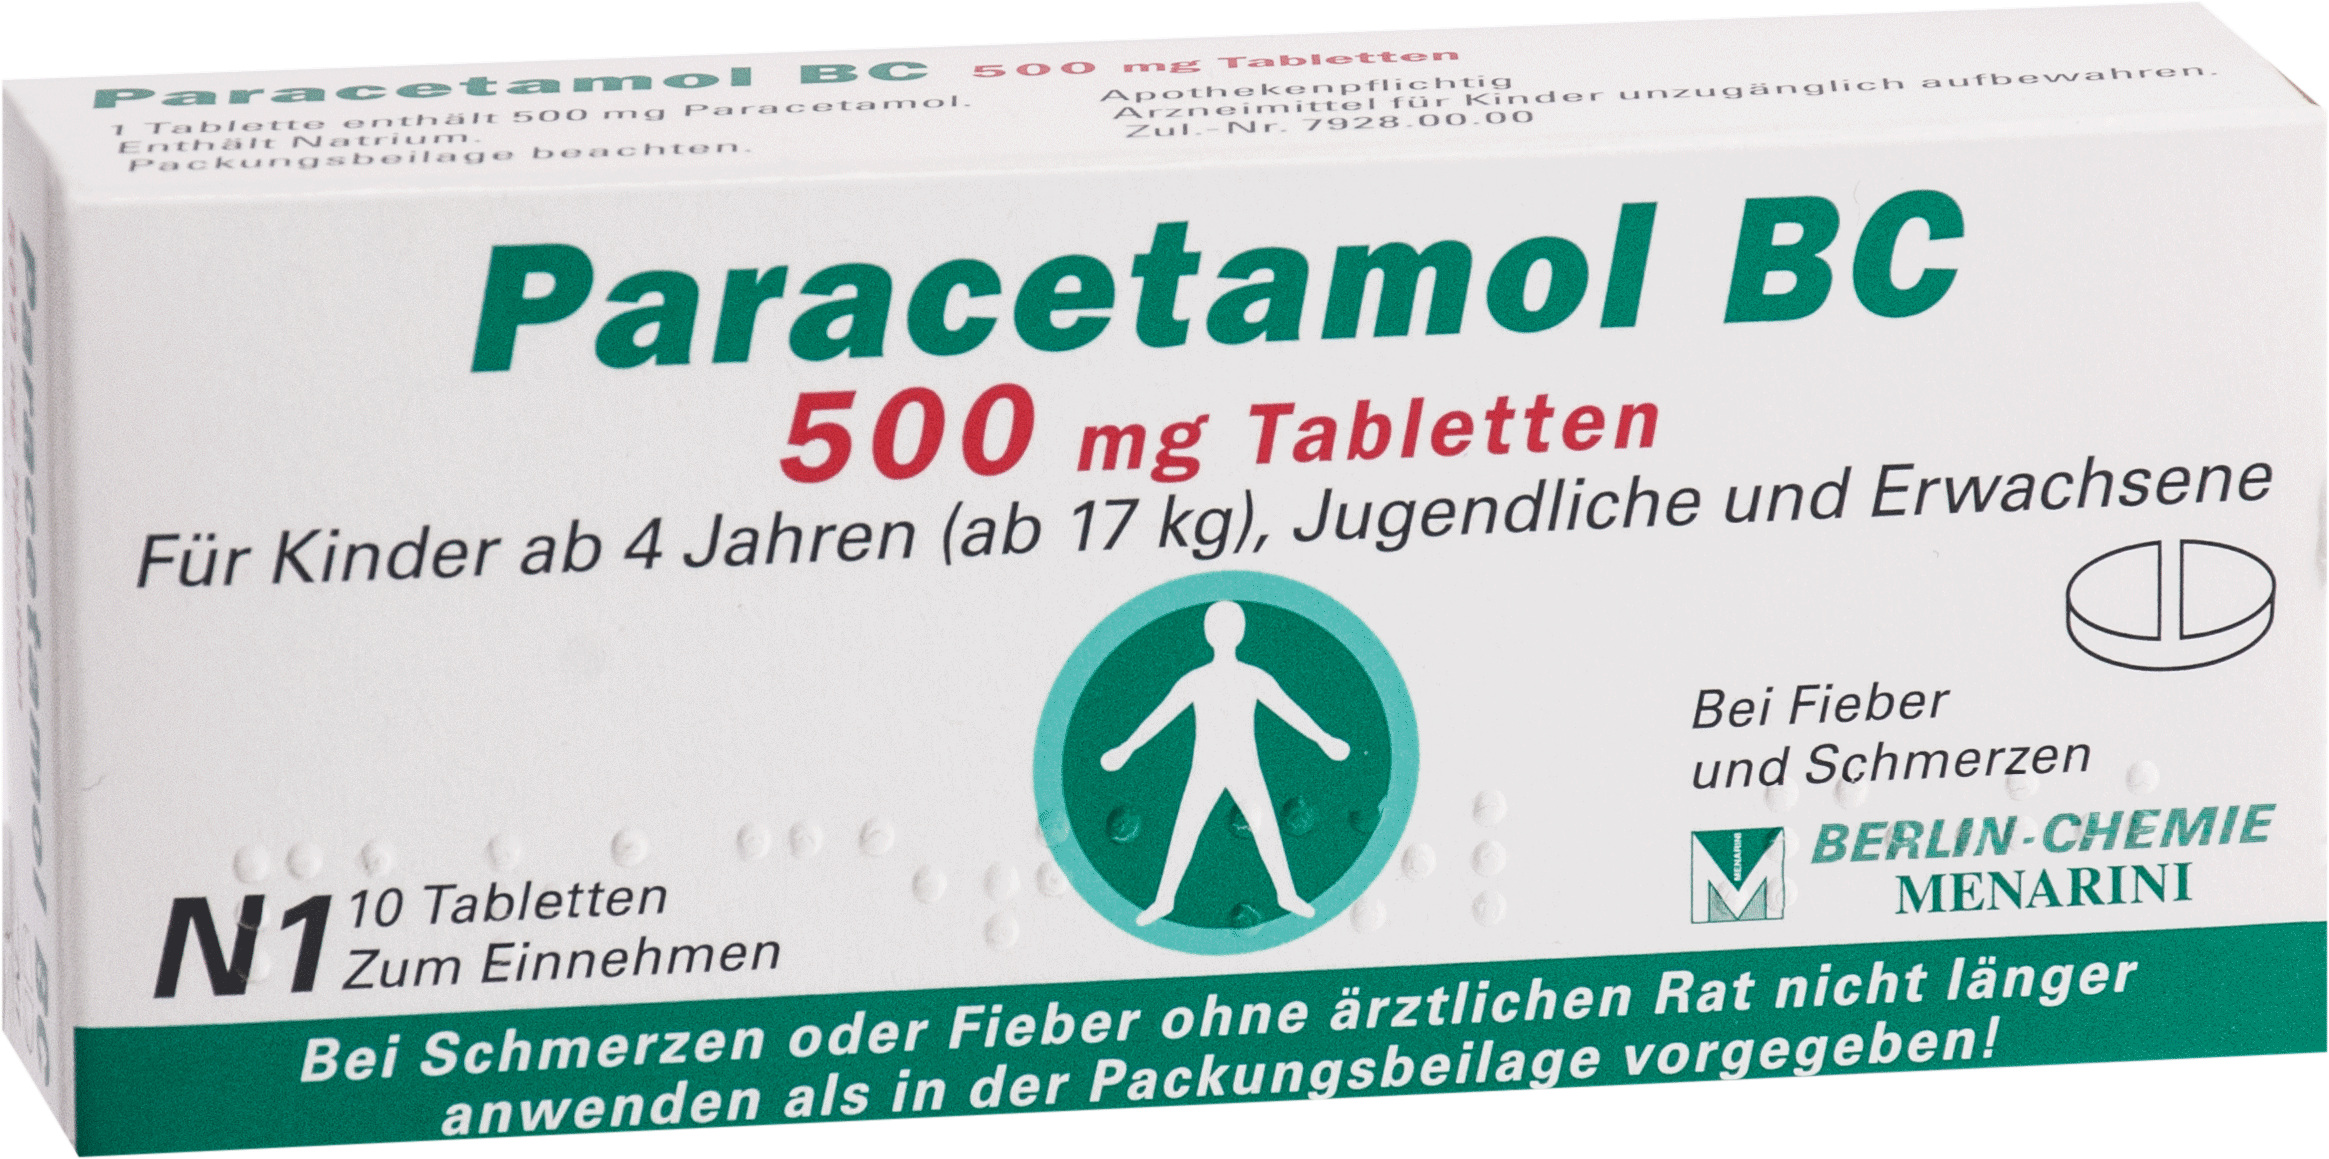 Paracetamol BC 500mg Tabletten